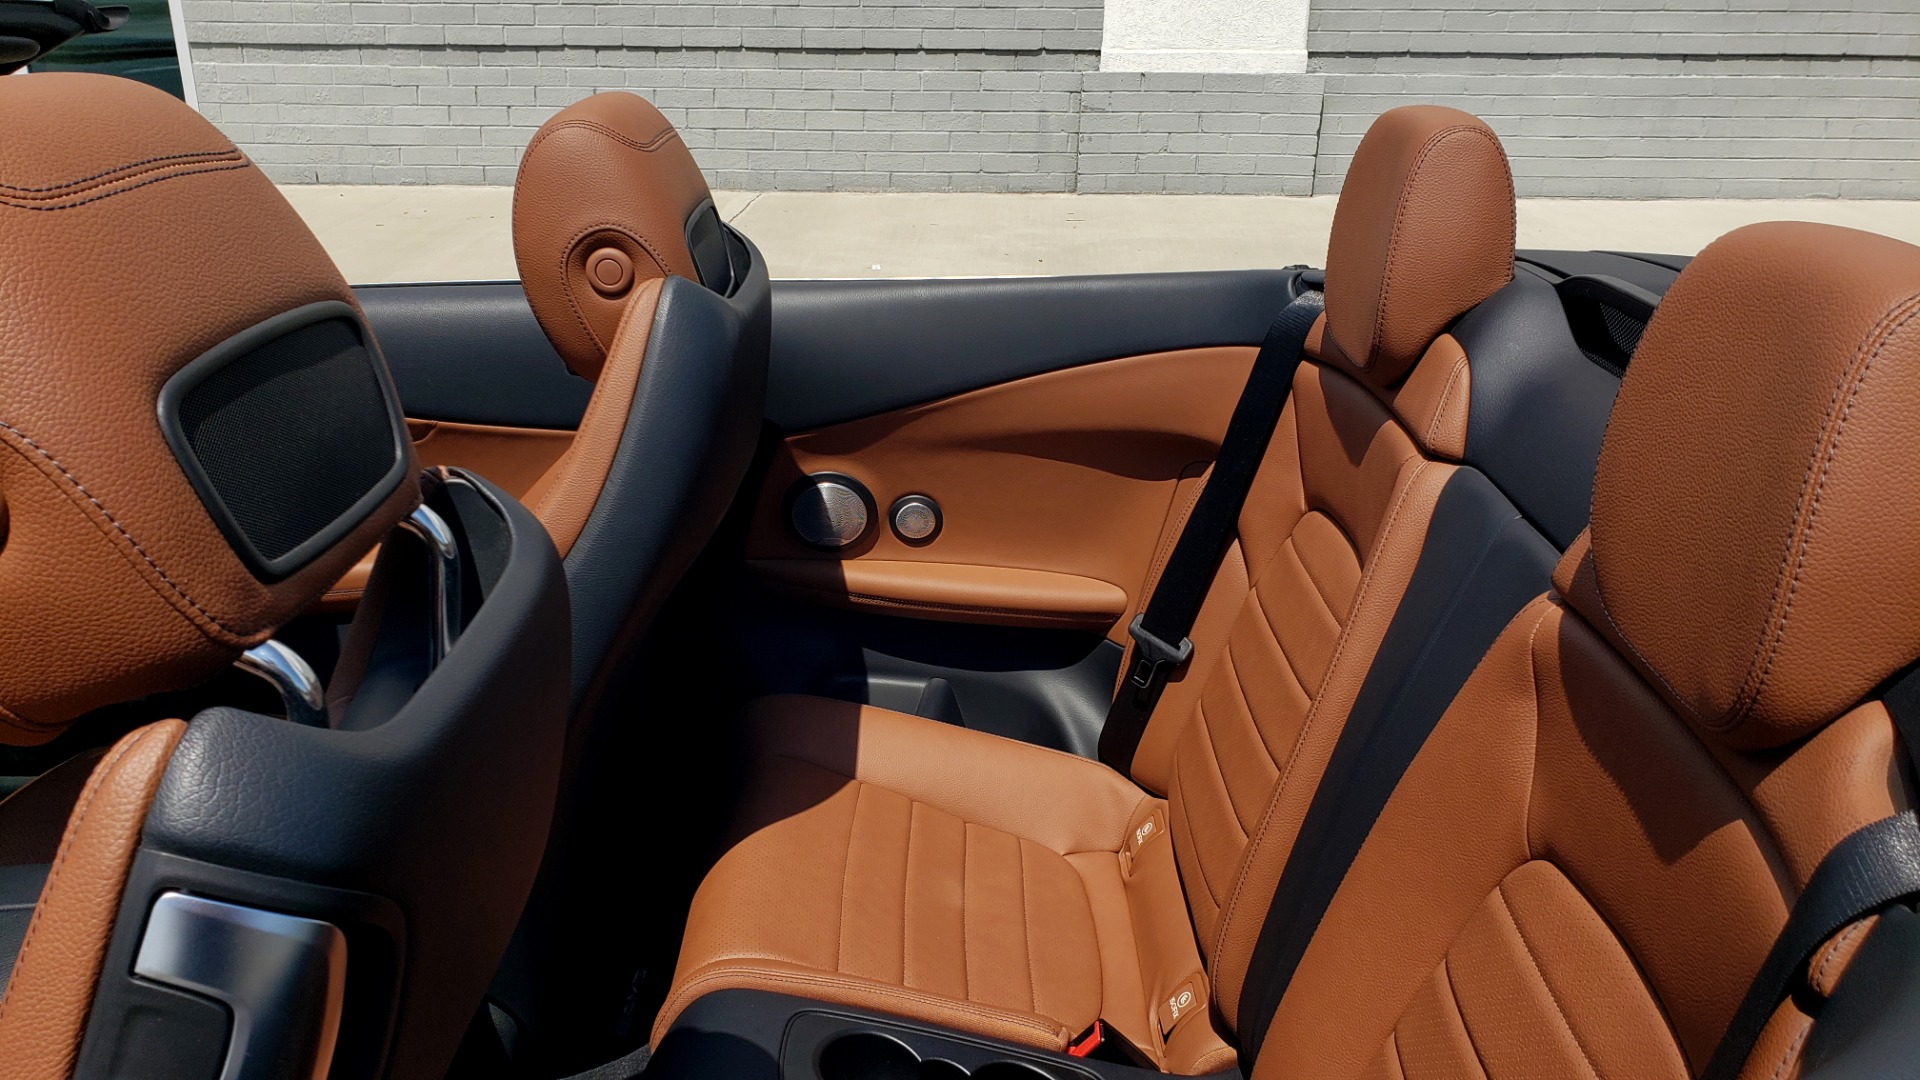 Used 2018 Mercedes-Benz C-CLASS C 300 CABRIOLET PREMIUM / AWD / BURMESTER SND / APPLE / REARVIEW for sale $44,995 at Formula Imports in Charlotte NC 28227 14